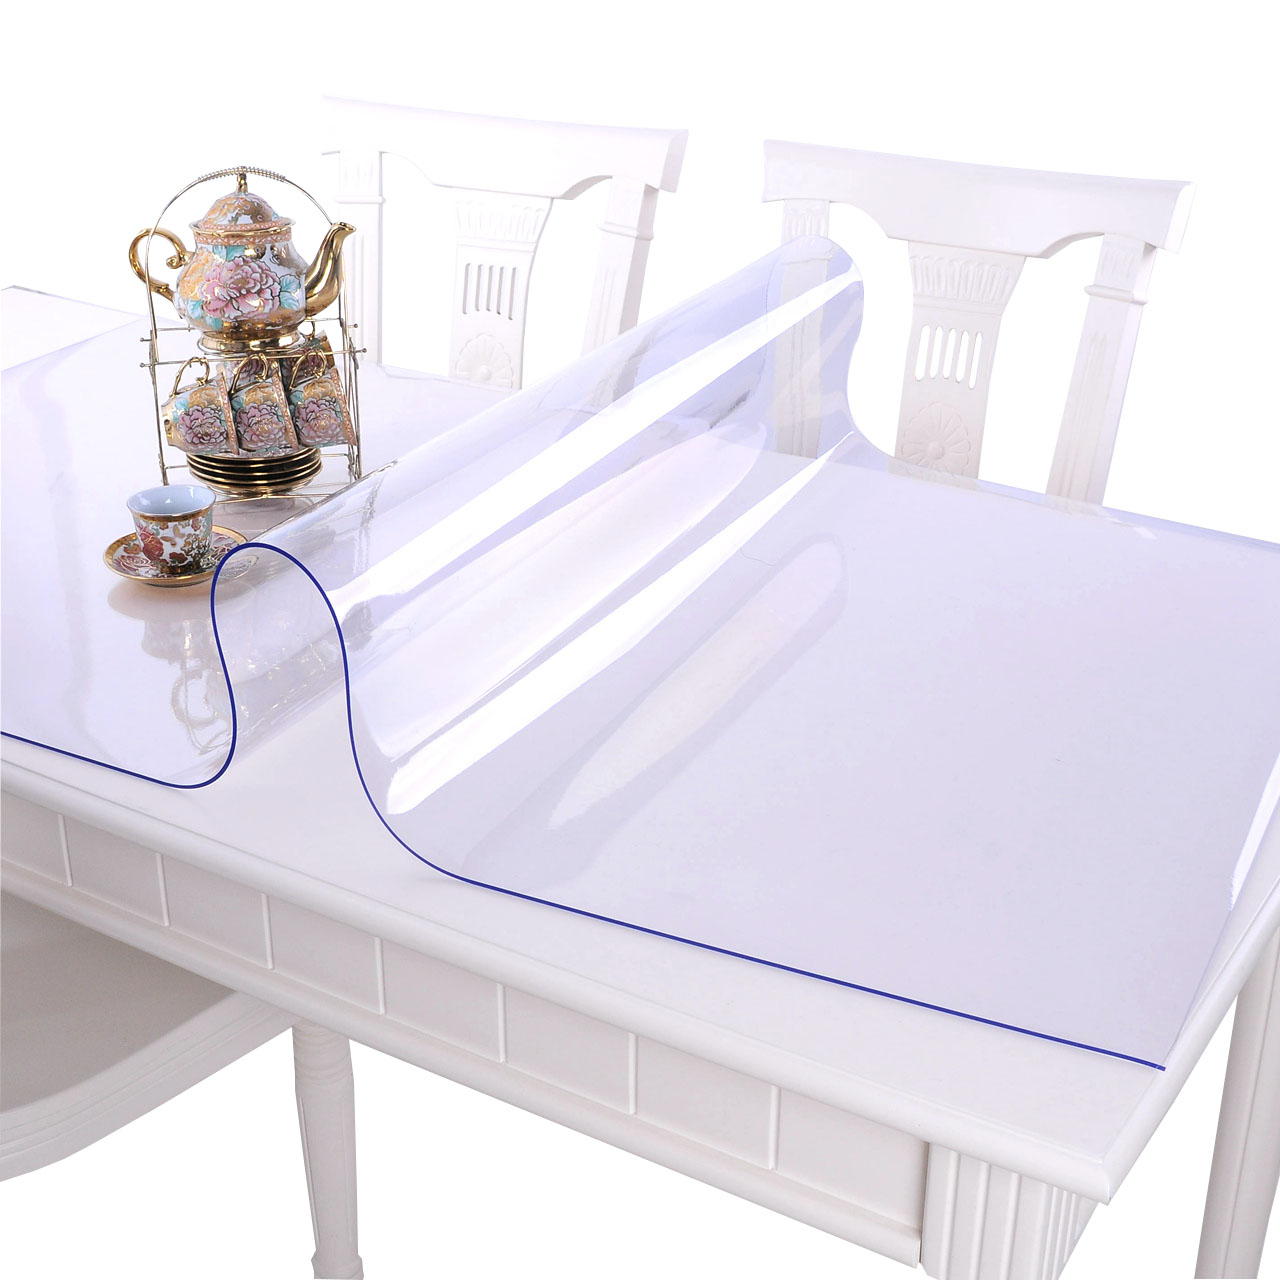 Soft Glass Pvc Tablecloth Waterproof Anti Hot Anti Oil Free Transparent Plastic Pad